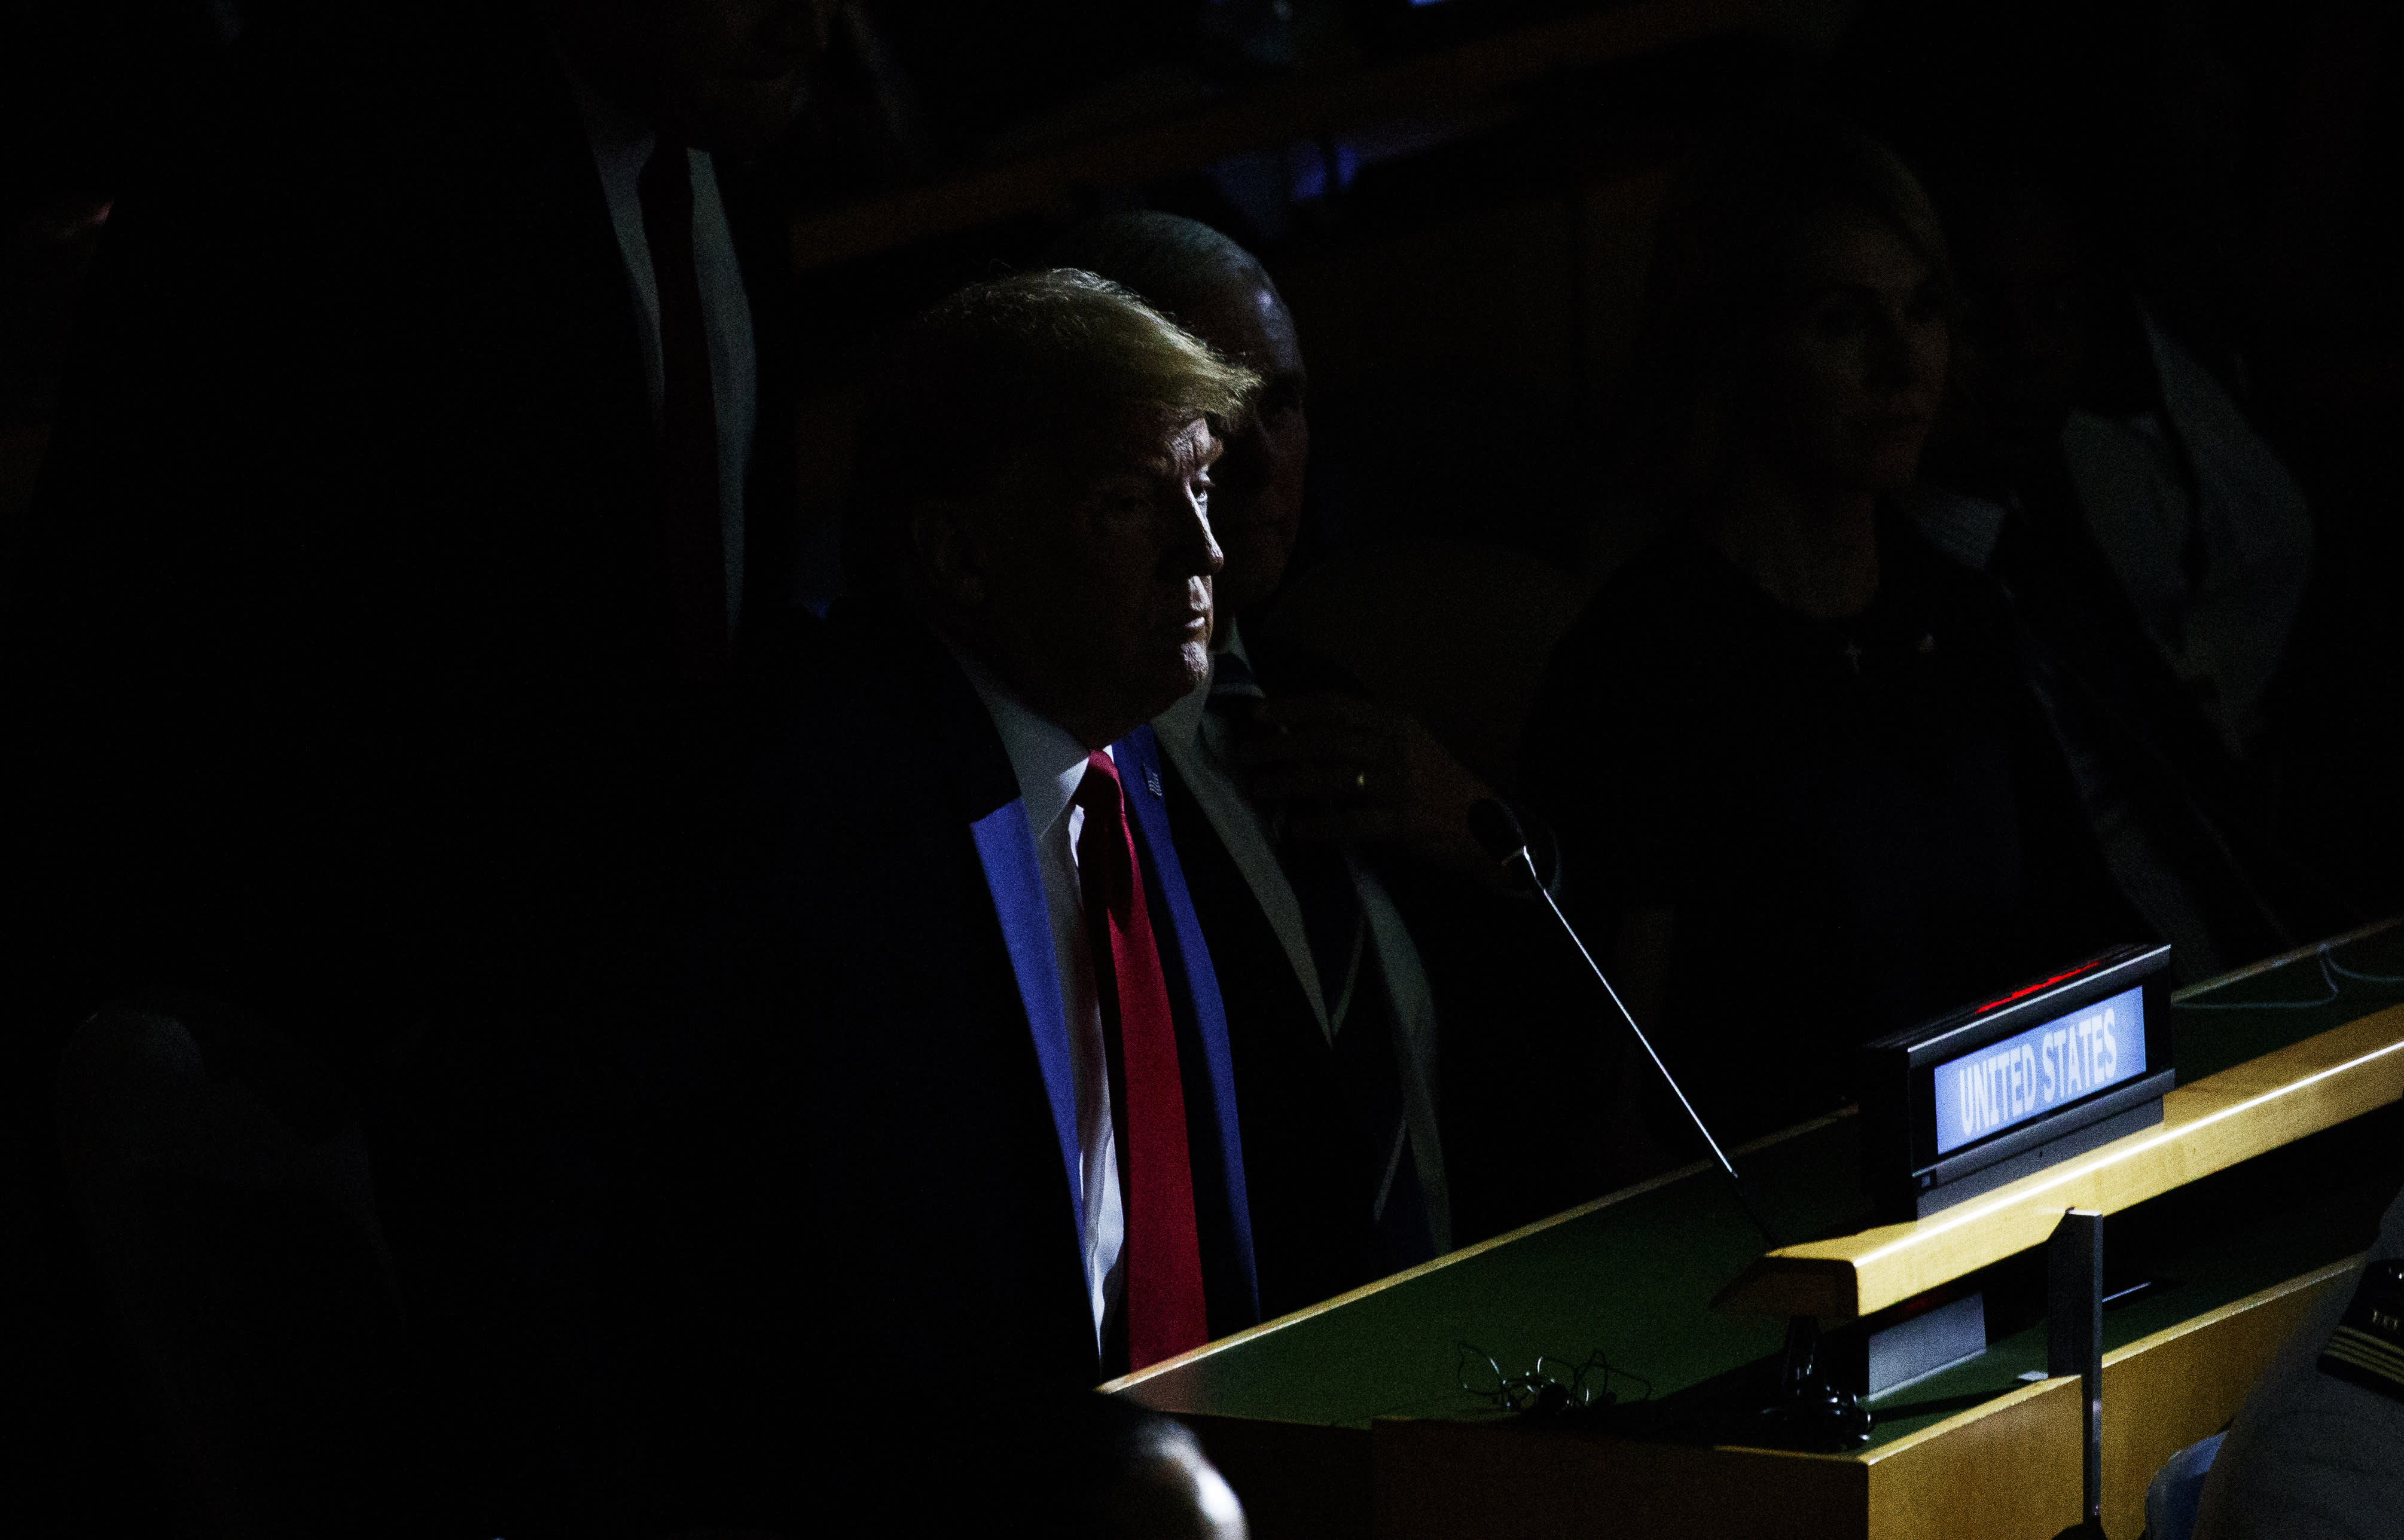 President Donald Trump listens during the the United Nations Climate Action Summit during the General Assembly at U.N. headquarters on Monday, Sept. 23, 2019. World leaders are convening at the annual U.N. General Assembly. They're grappling with climate change, regional conflicts and a potential dispute in the Middle East that could impact the entire planet. U.N. Secretary-General Antonio Guterres will open the proceedings. He'll be followed immediately by the traditional first speaker, Brazil, represented by its new president, Jair Bolsonaro, and the United States, represented by Trump. (AP Photo/Evan Vucci)